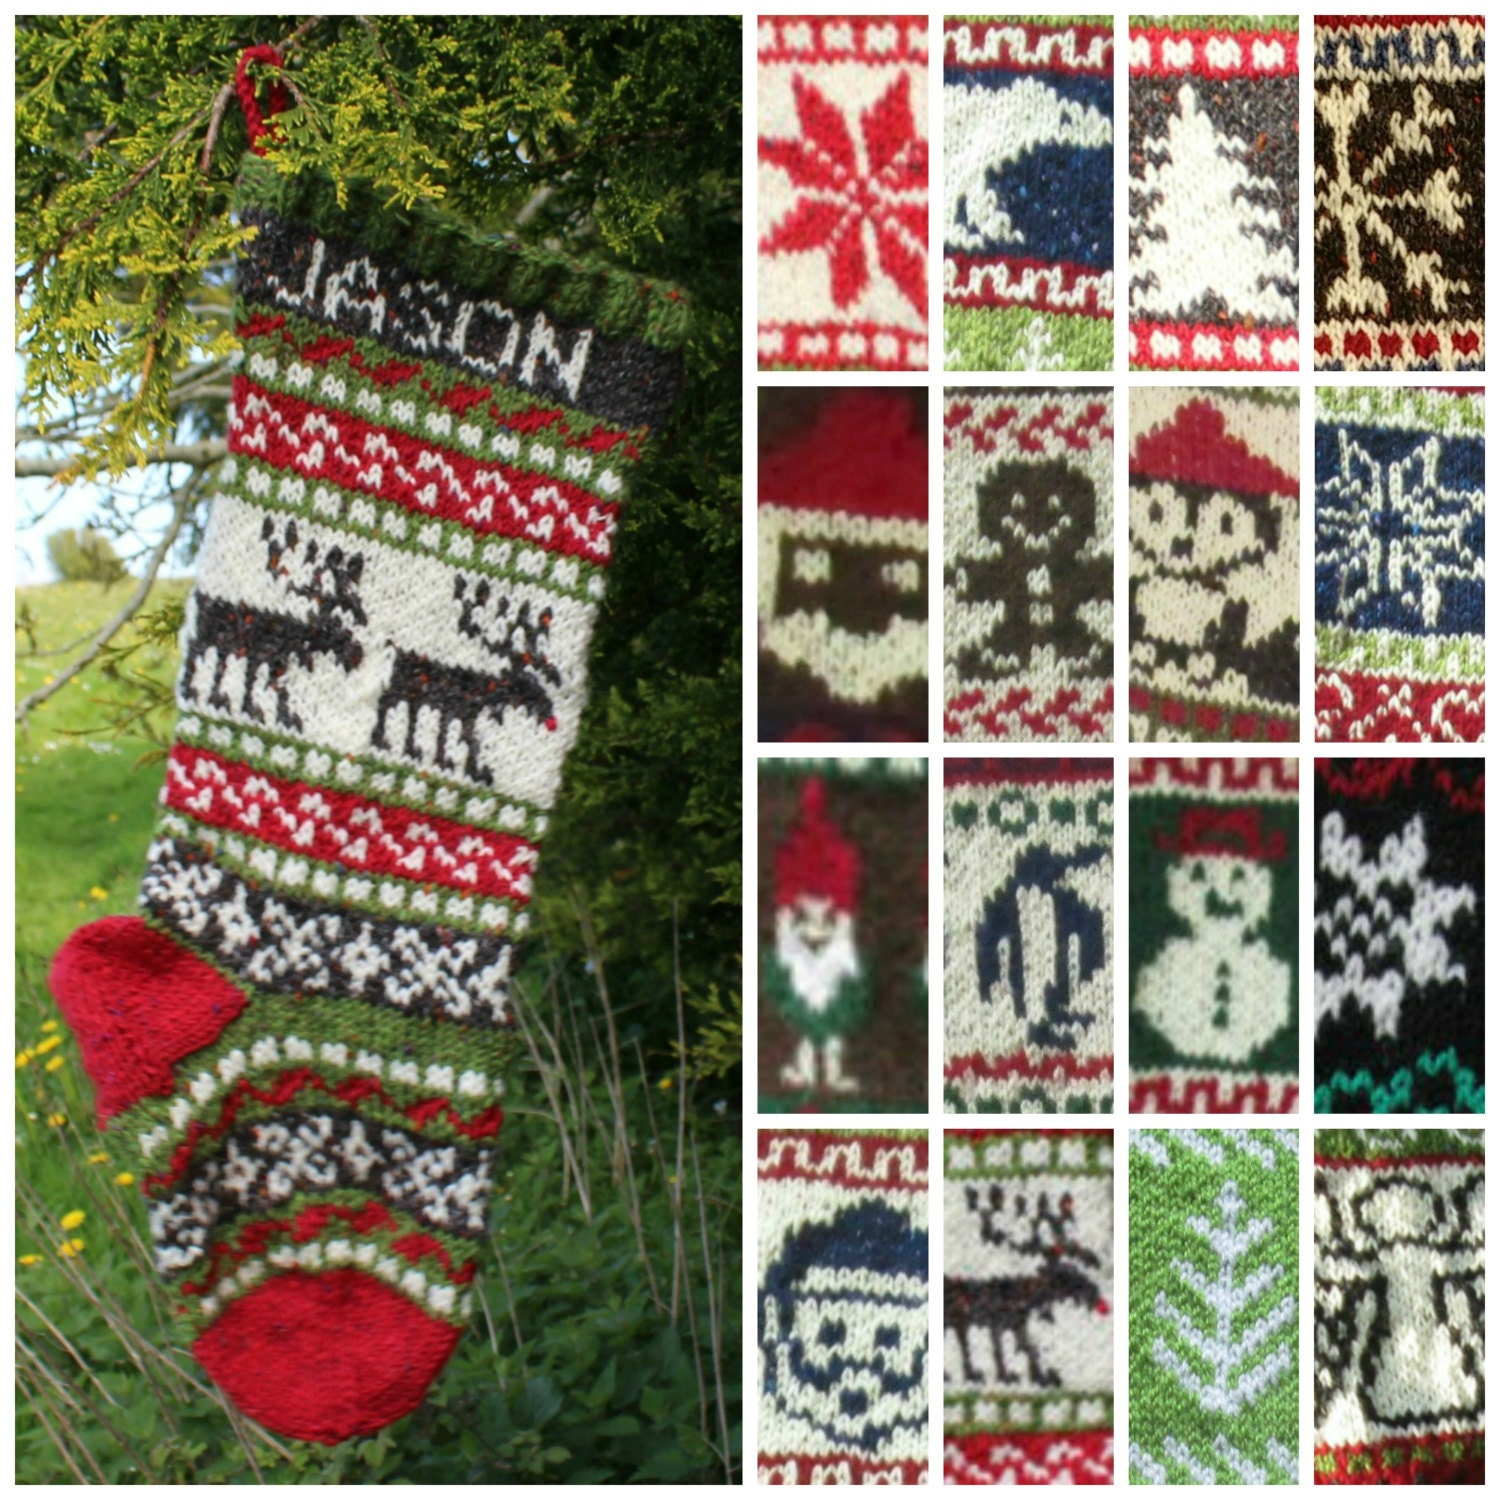 Knitting Pattern Collection of 16 Christmas Stockings Charts